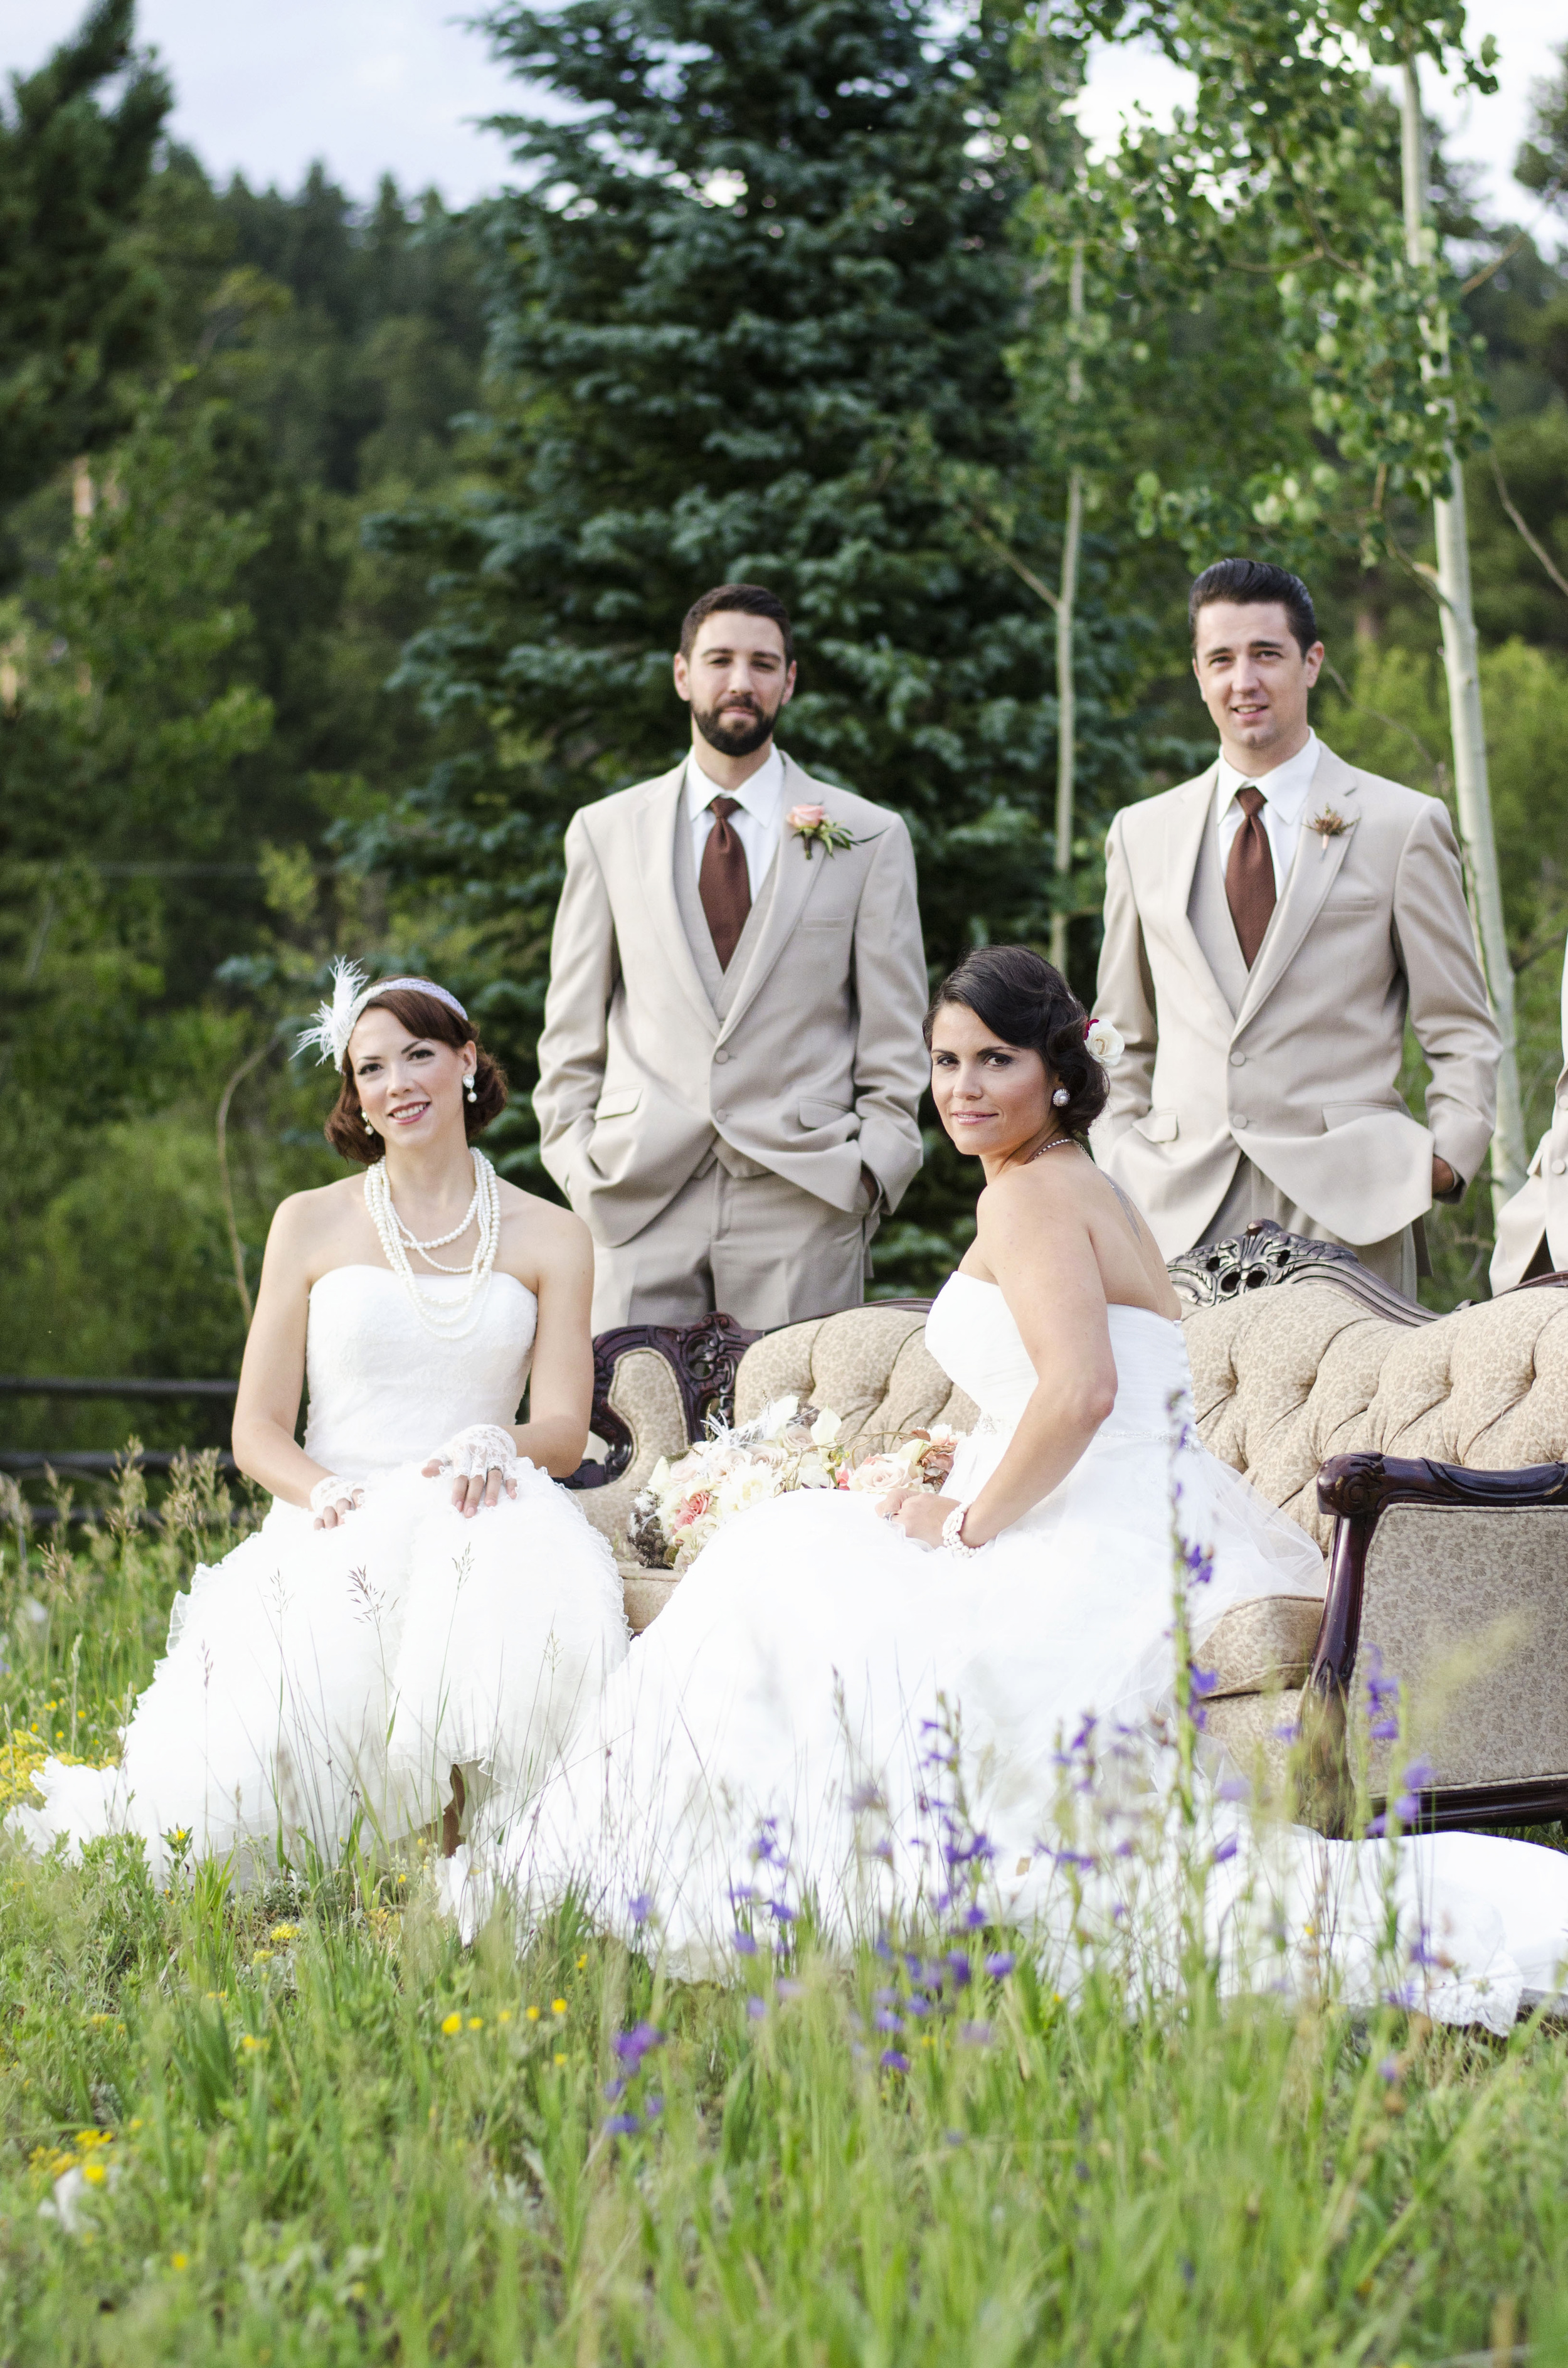 Photo by Jennie Crate of  Green Blossom Photography